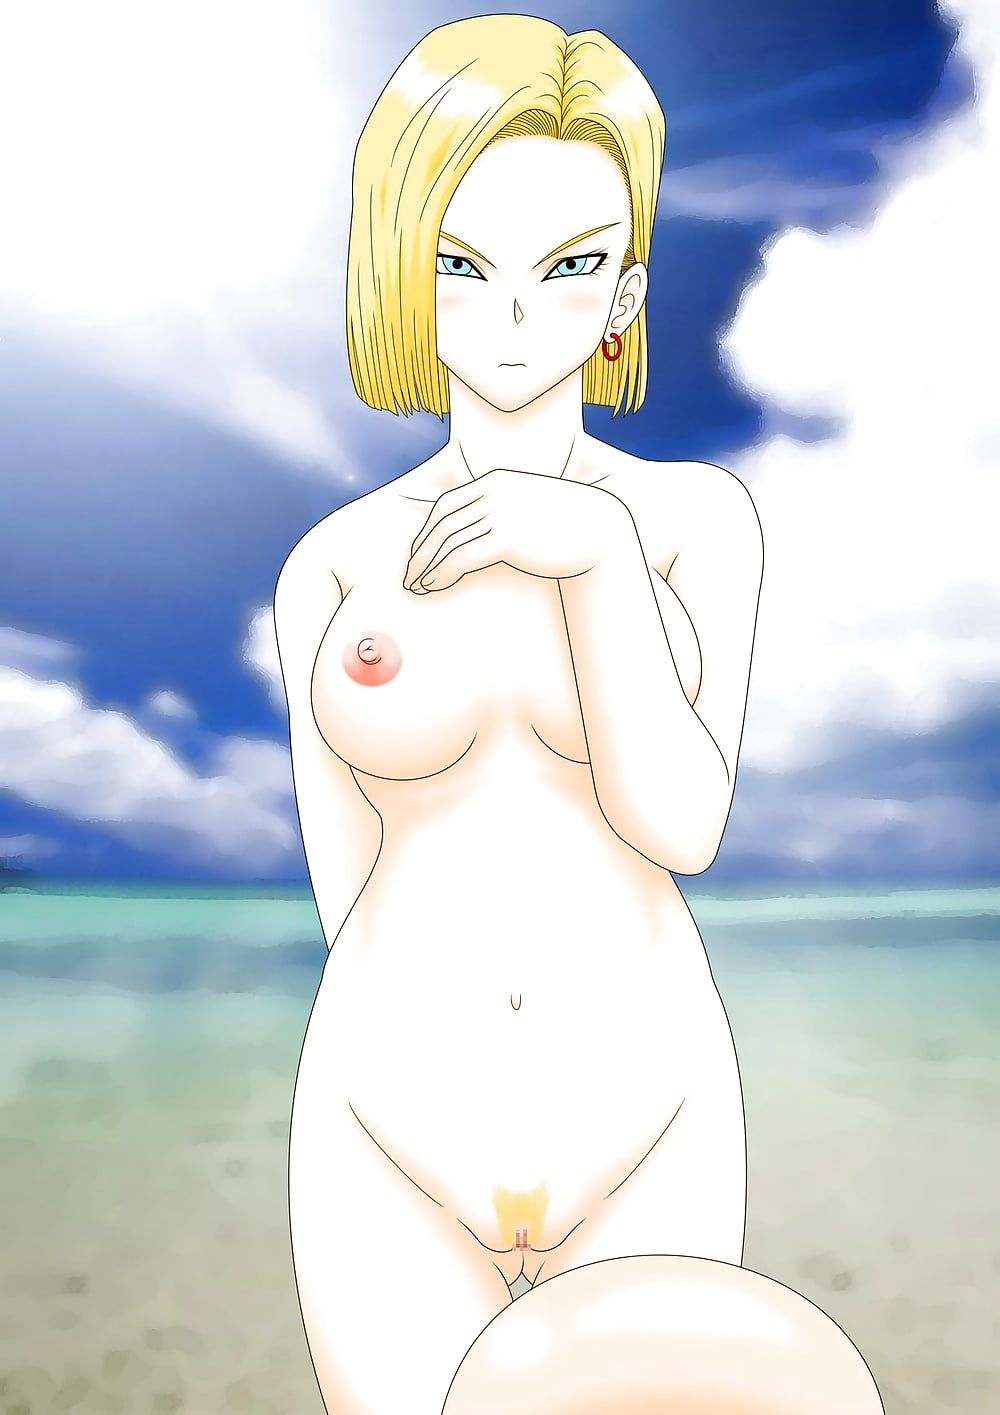 Android 18 honey select - 2 part 9